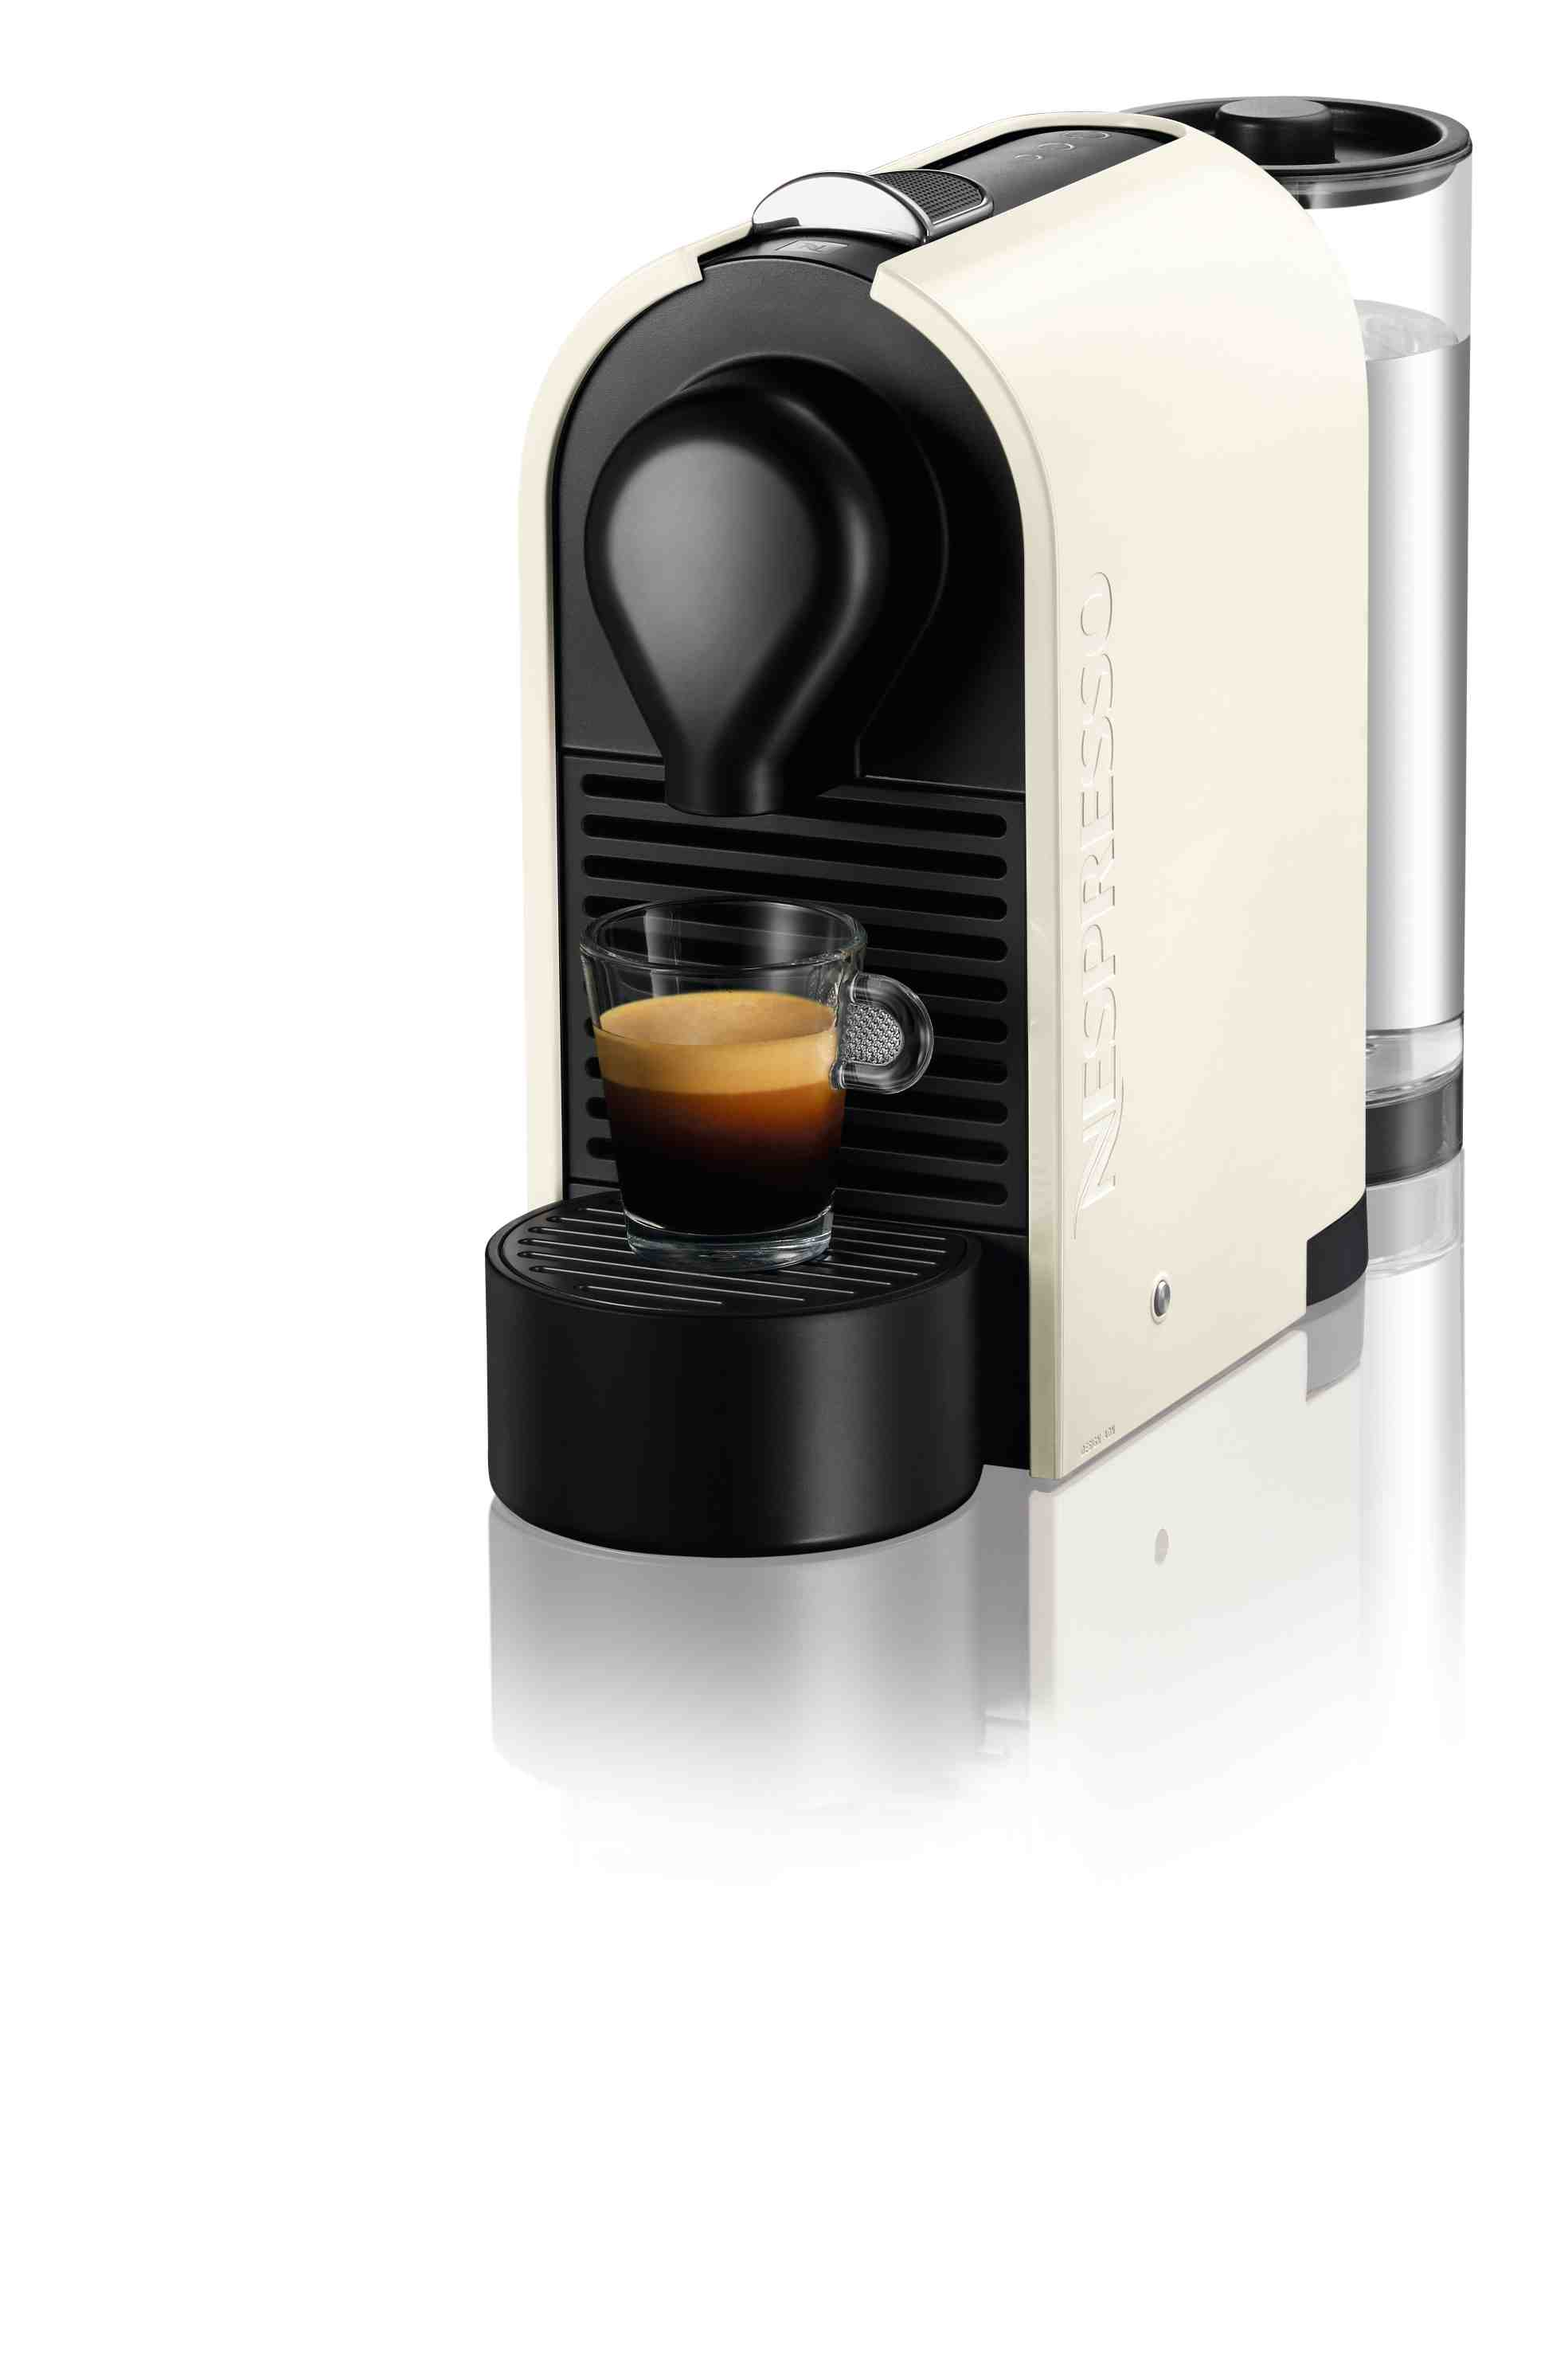 new entry level nespresso machine. Black Bedroom Furniture Sets. Home Design Ideas